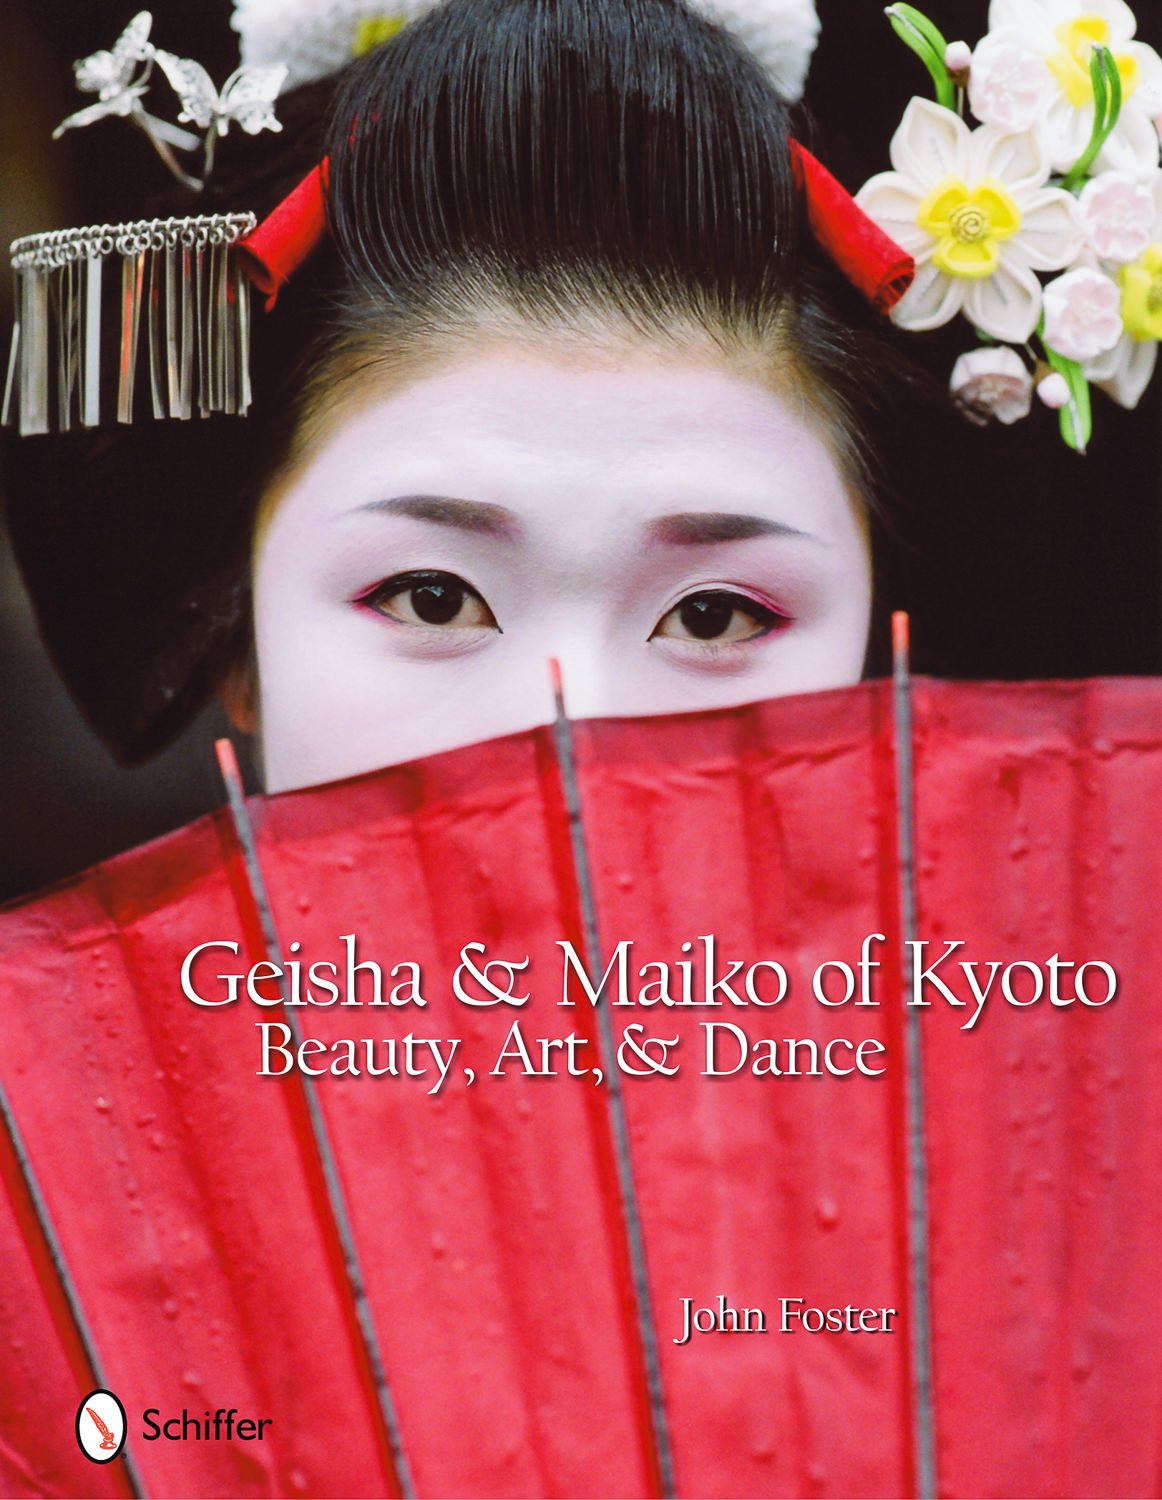 Geisha-Maiko-Kyoto-Beauty-Art-Dance-Cover.jpg